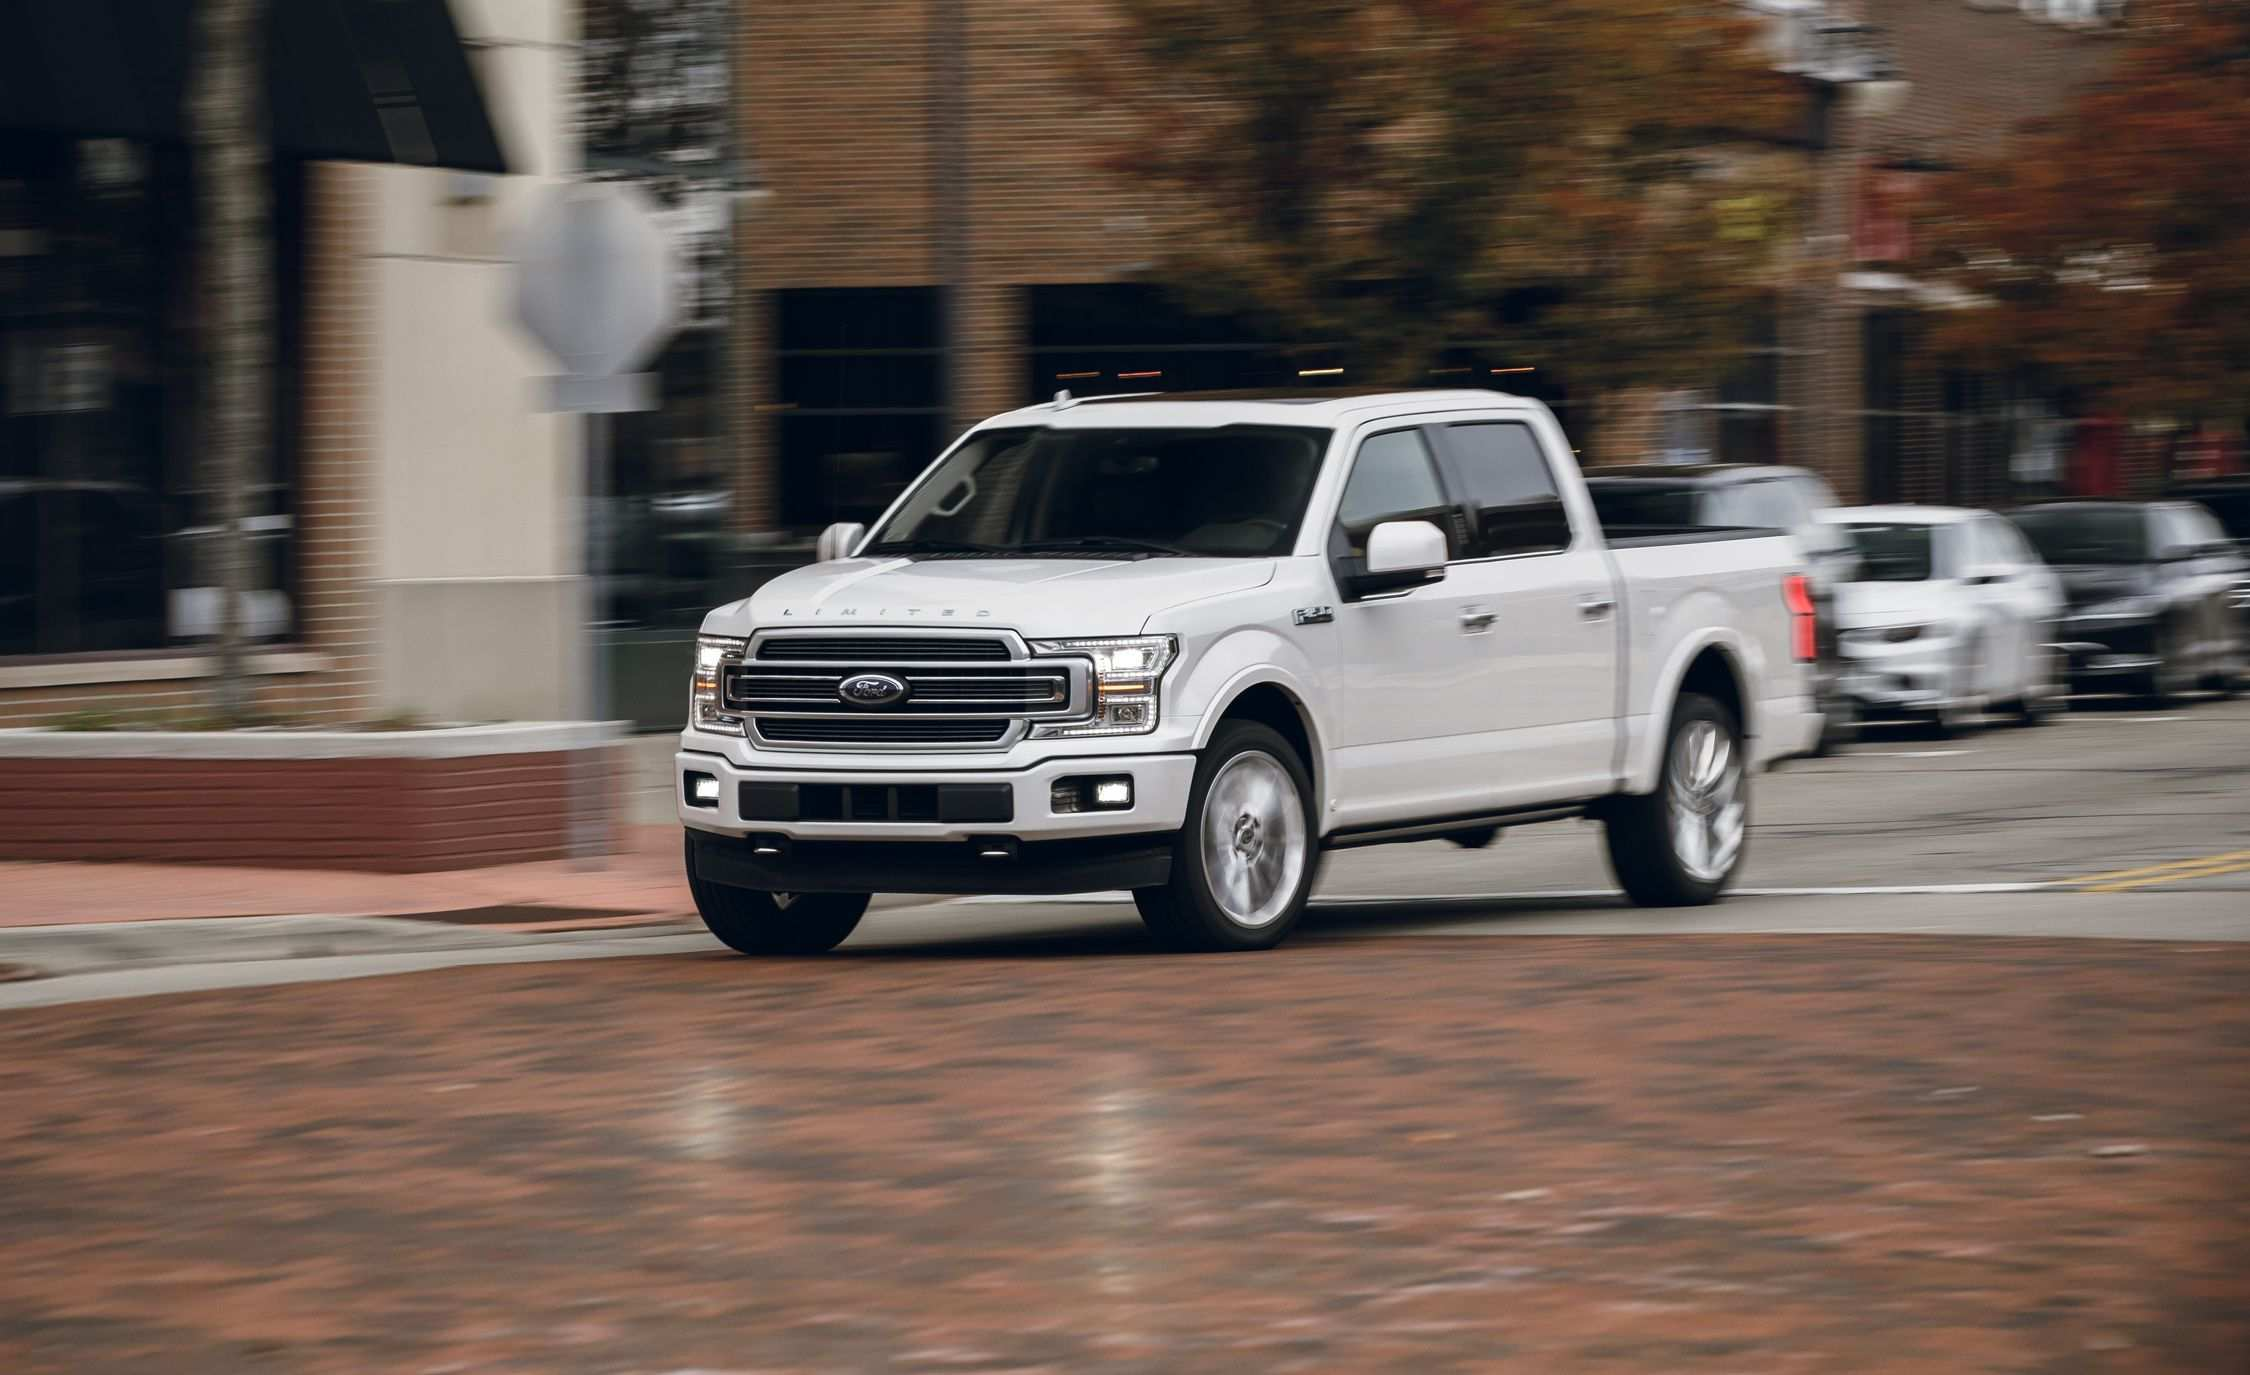 84 Gallery of 2019 Ford Lariat Price Pricing by 2019 Ford Lariat Price